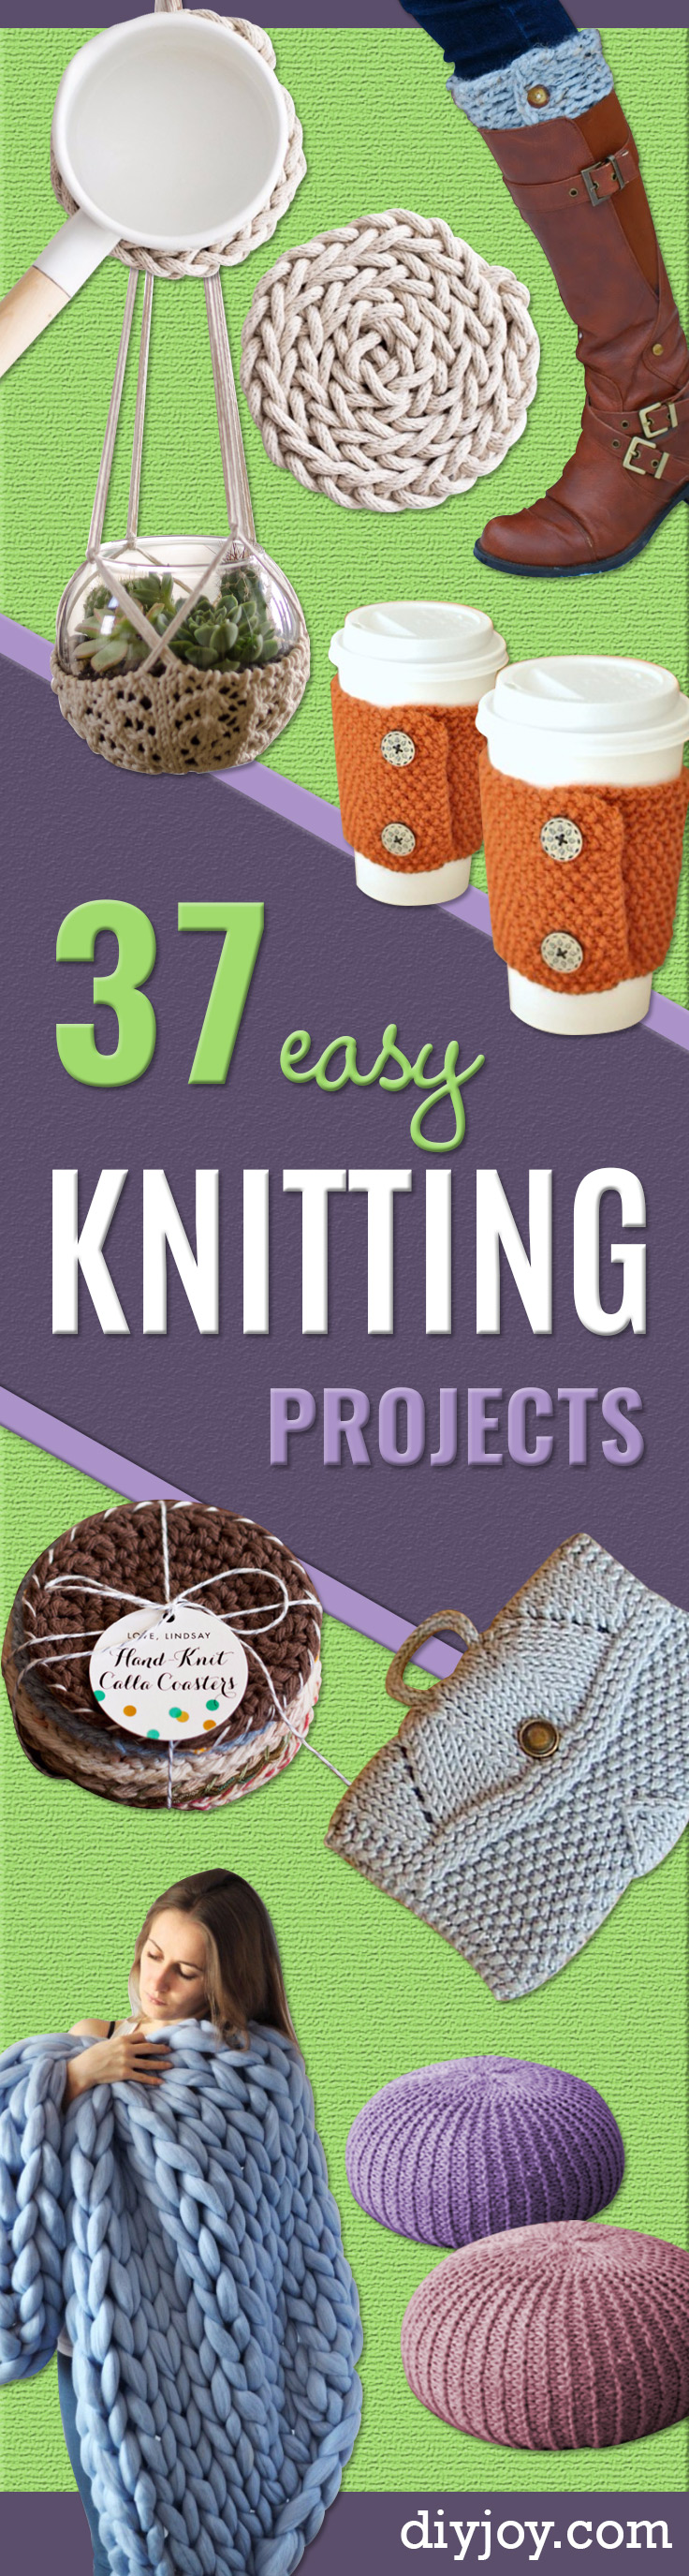 Easy Knitting Projects For Gifts : Easy knitting ideas